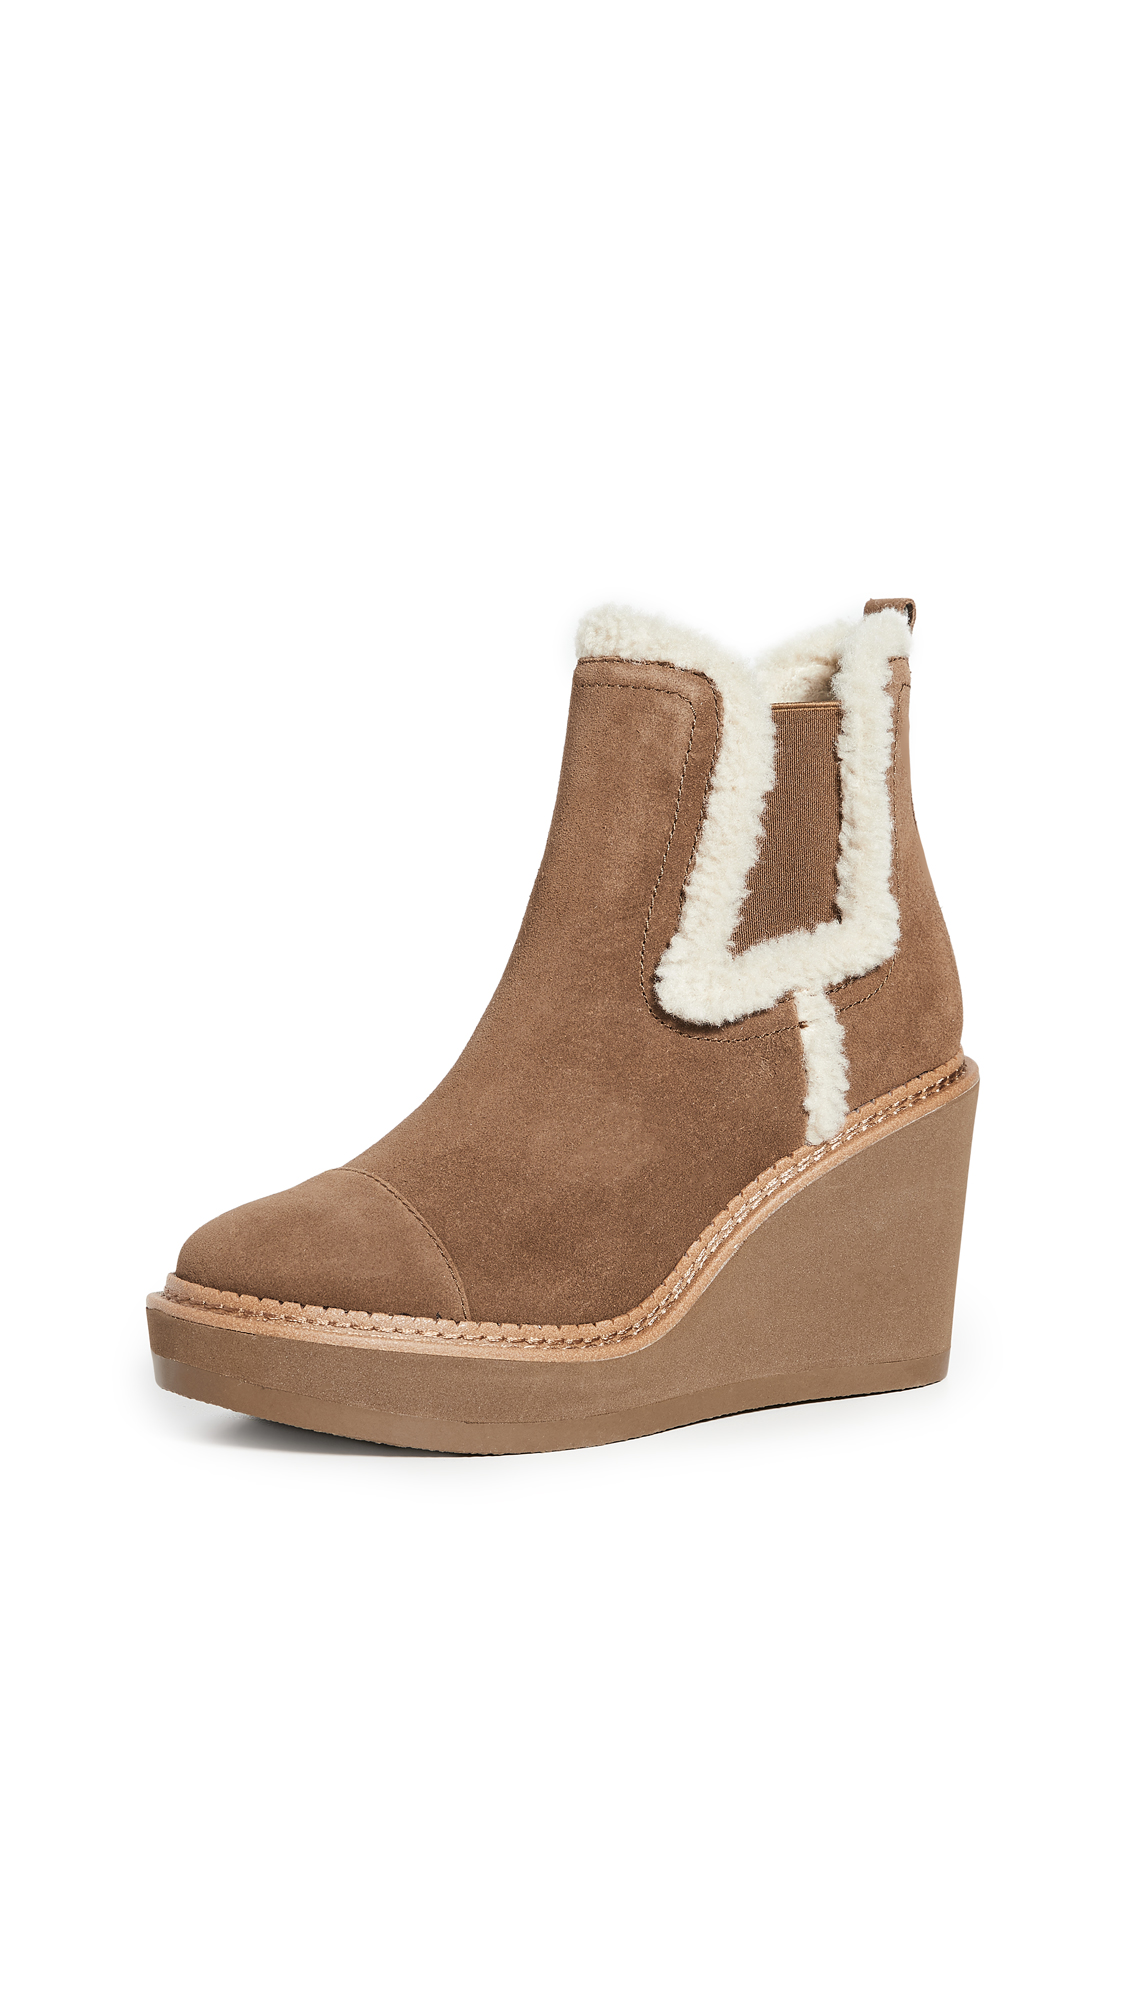 Photo of Sam Edelman Reagan Boots - shop Sam Edelman Boots, Flat online